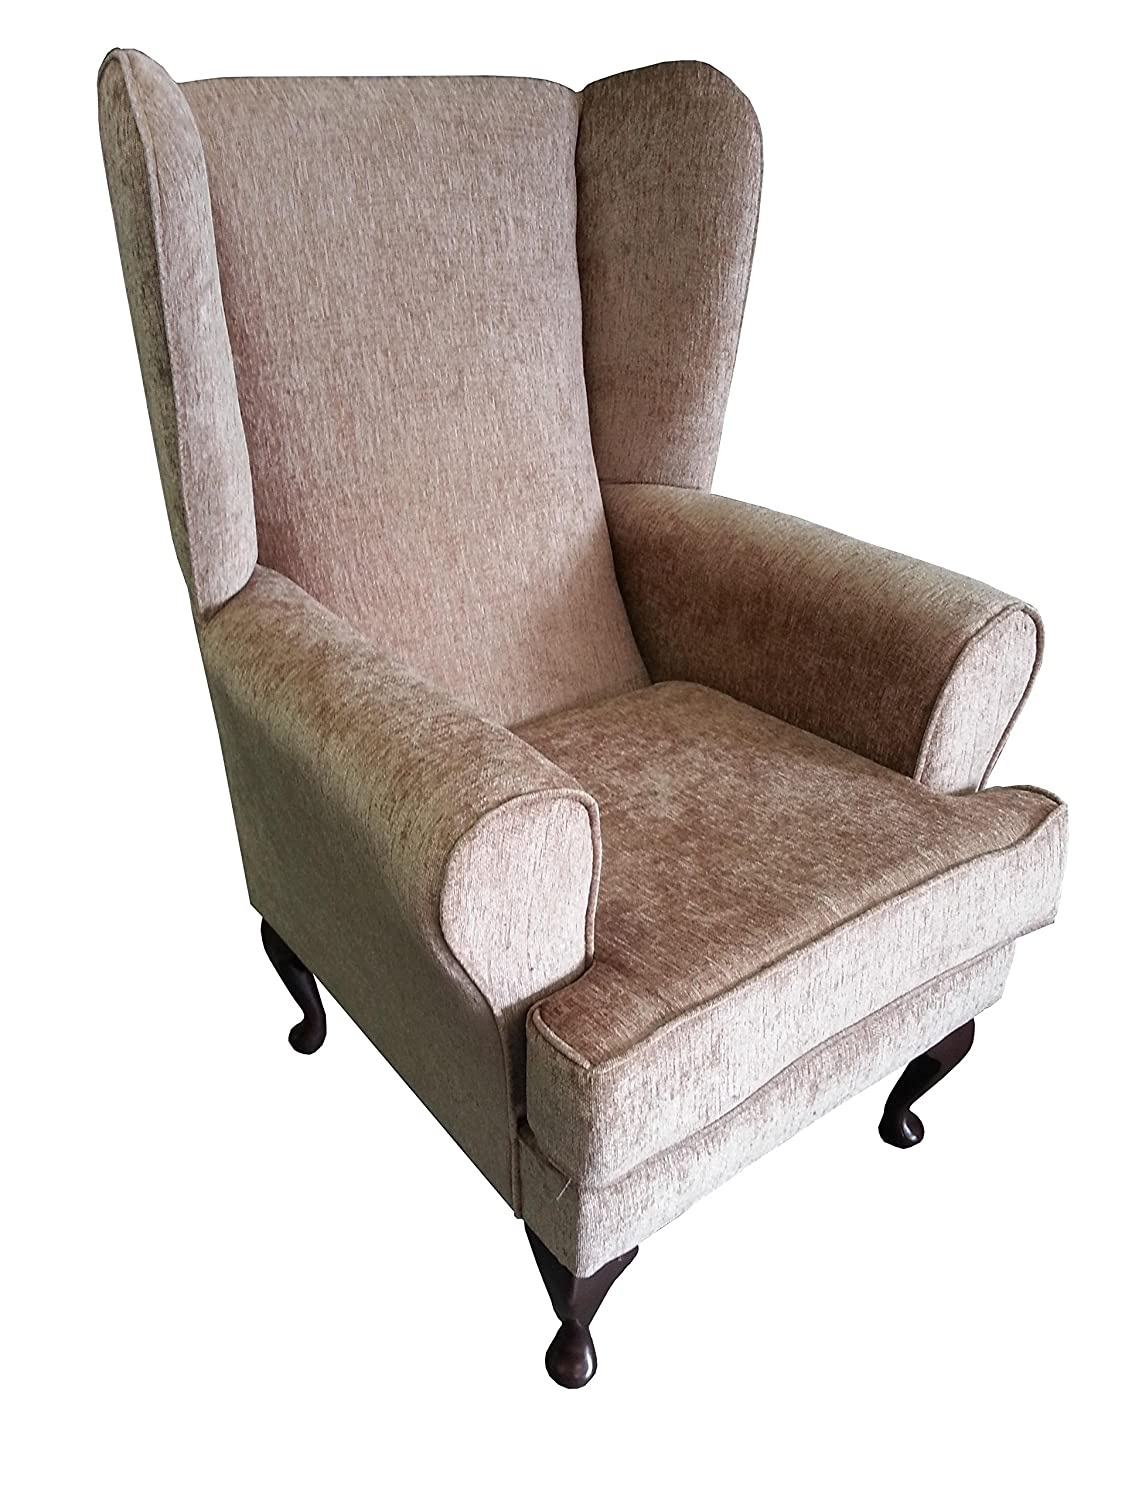 High Back Chairs For Living Room Peenmedia Com